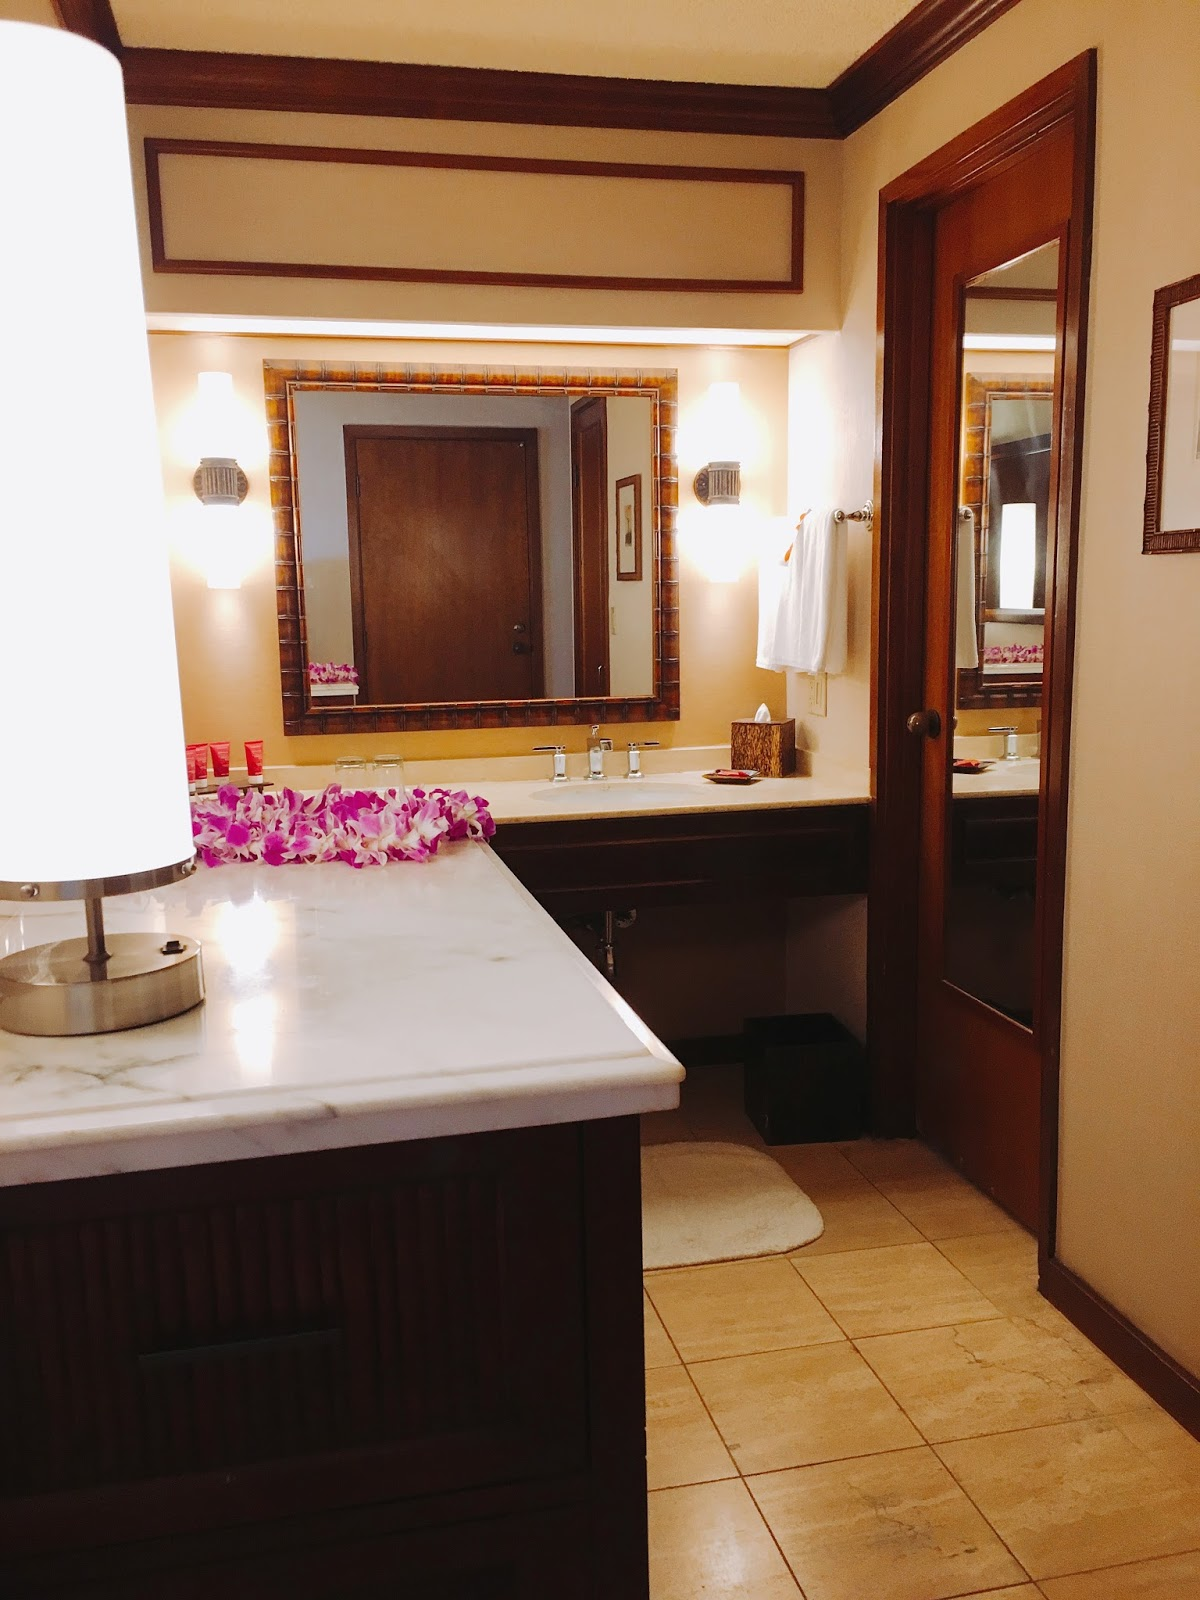 Hyatt Regency king bathroom